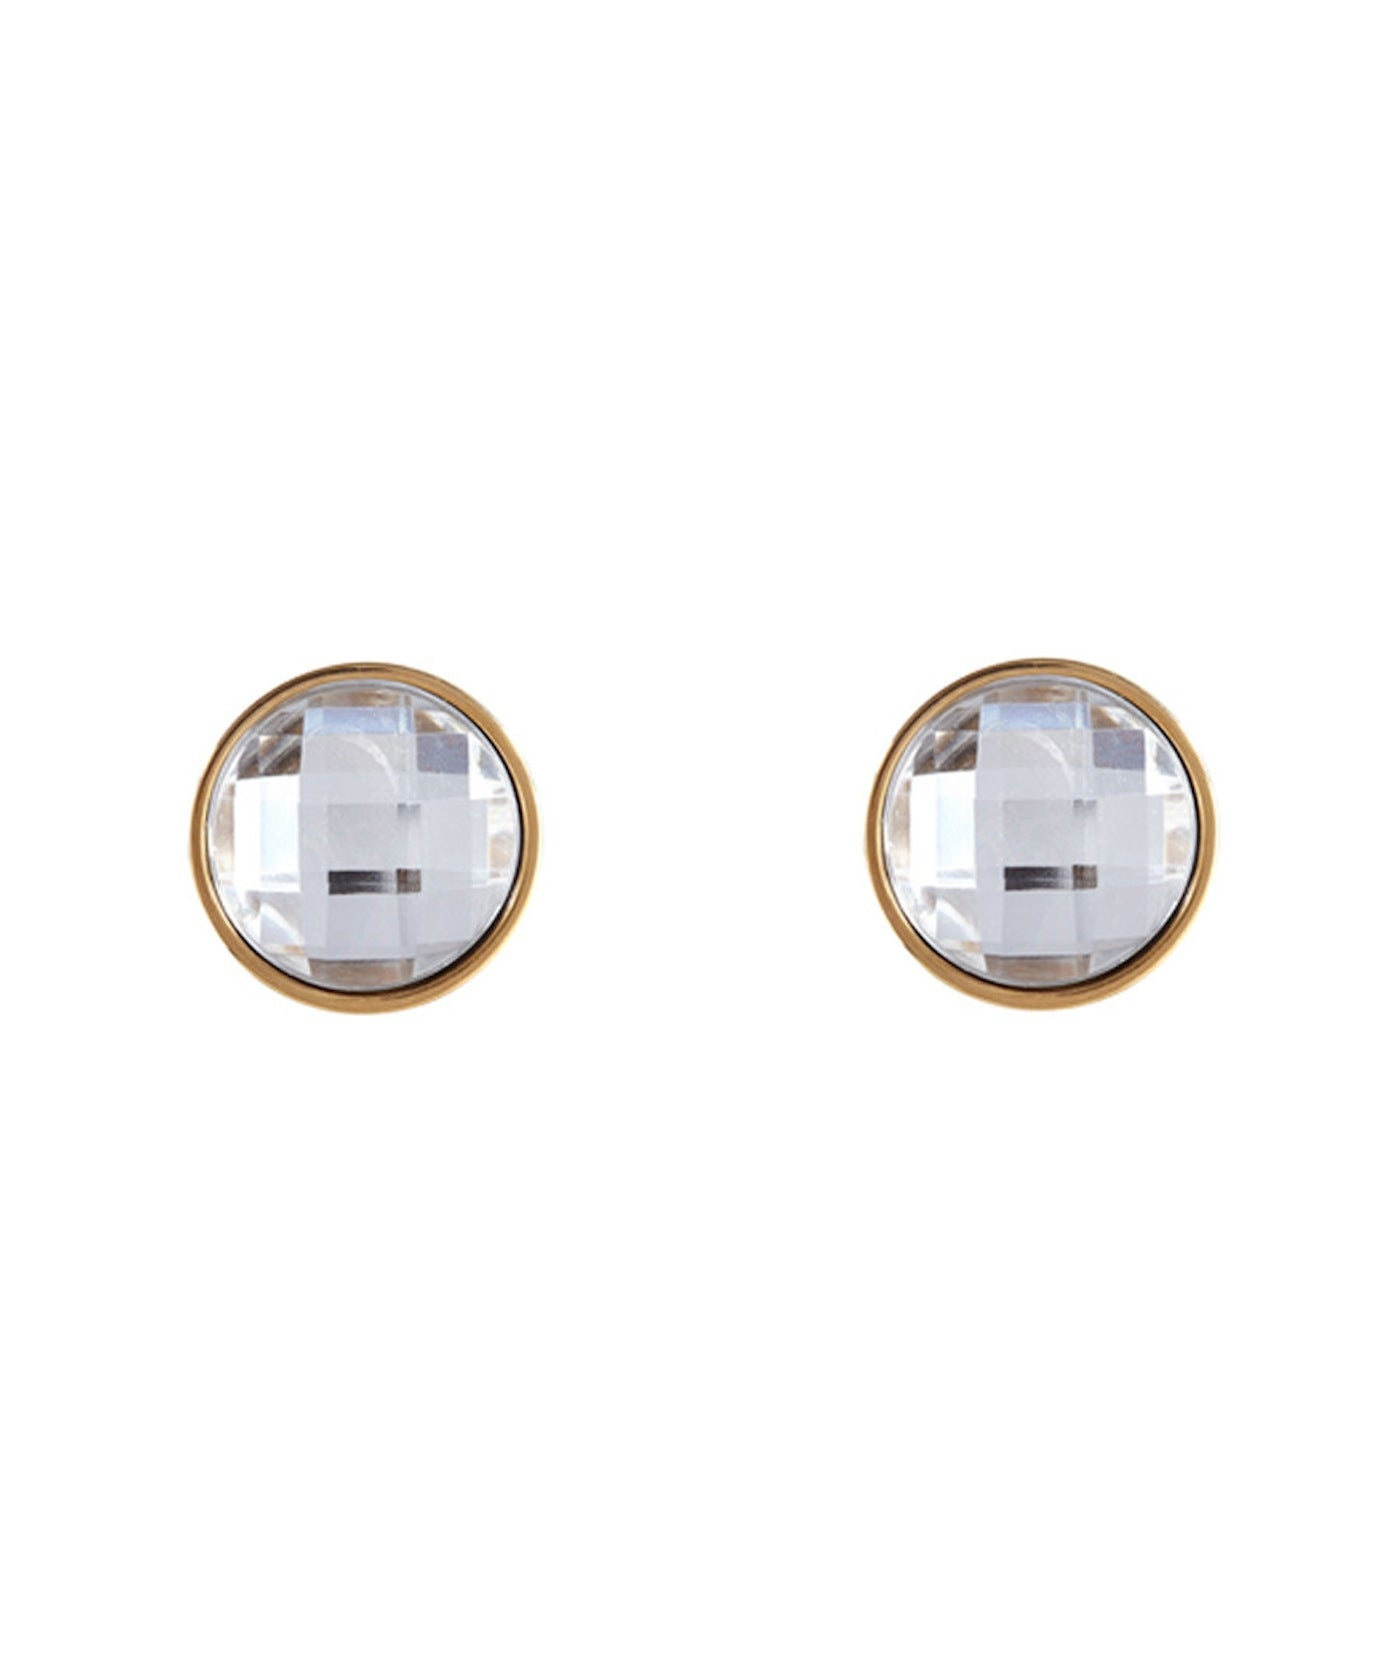 18k Gold Plated Crystal Disc Stud Earrings